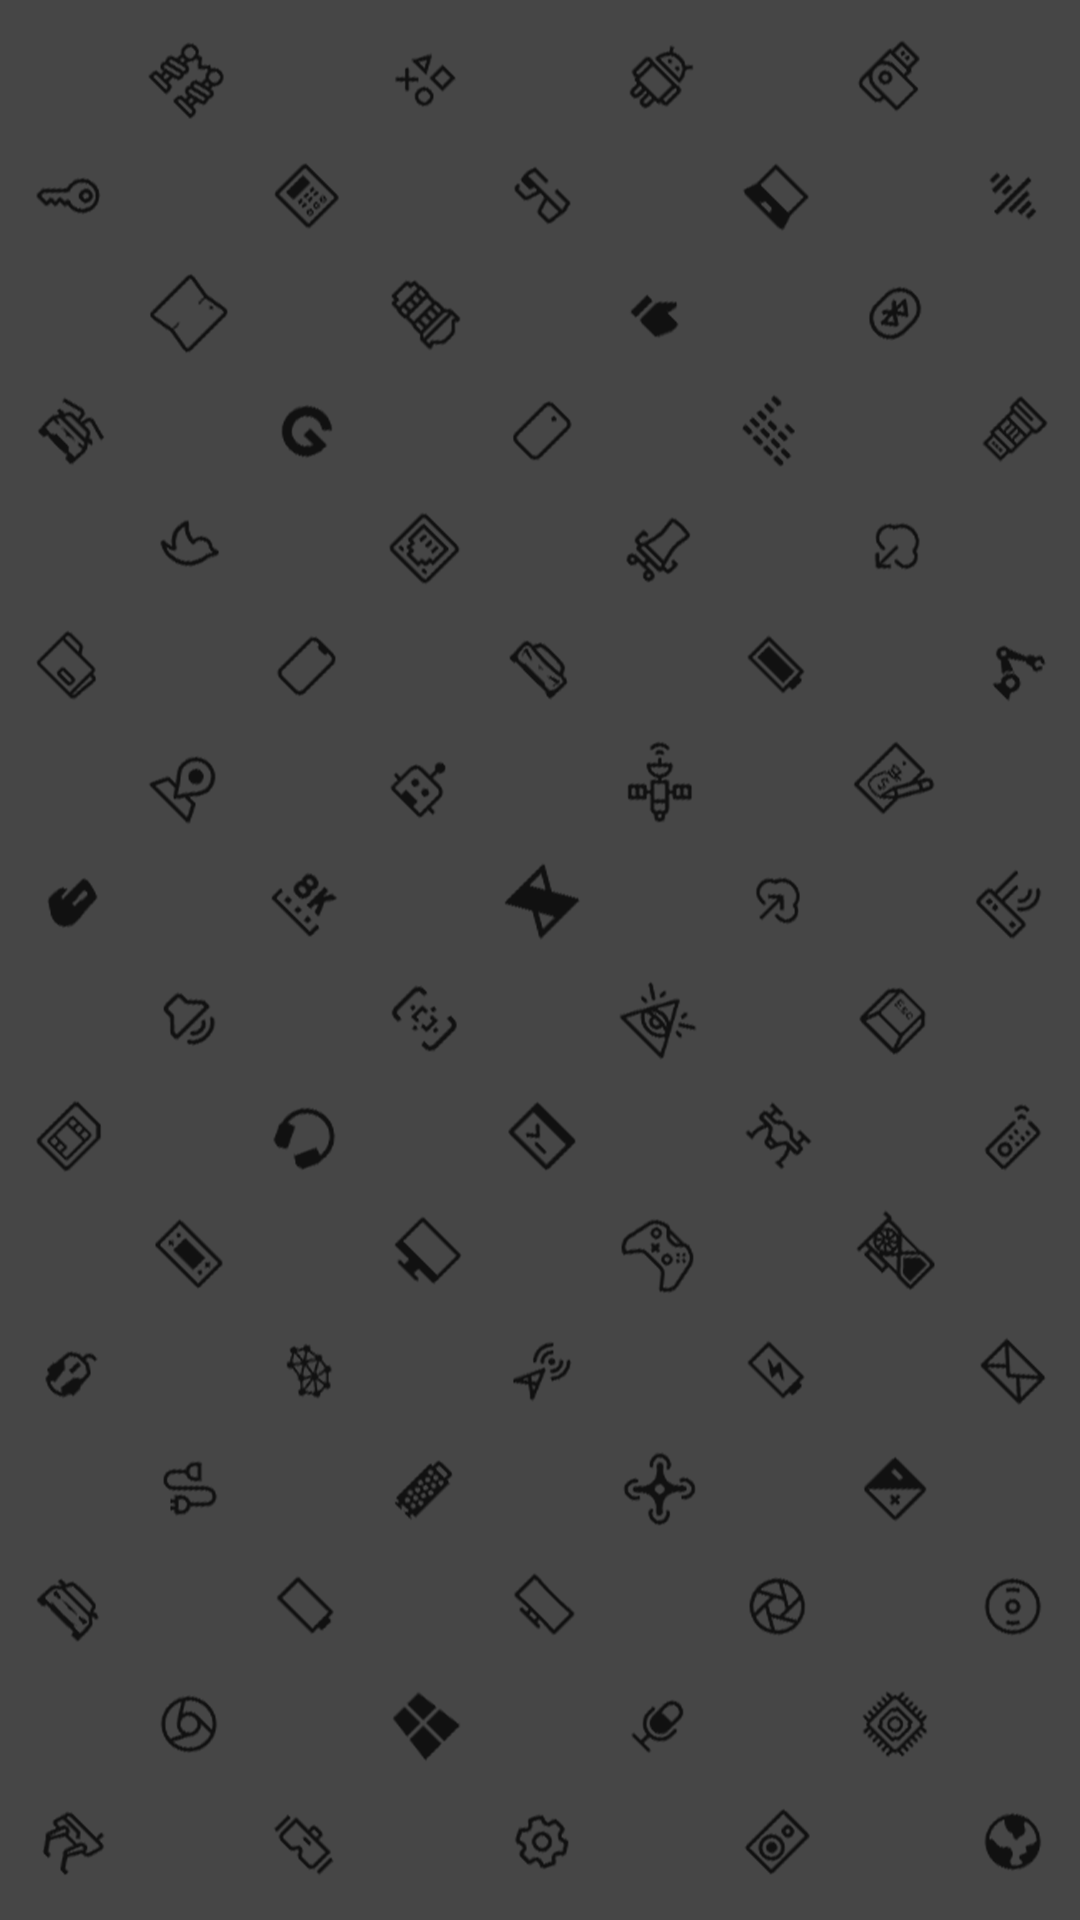 mkbhd icons black phone wallpaper